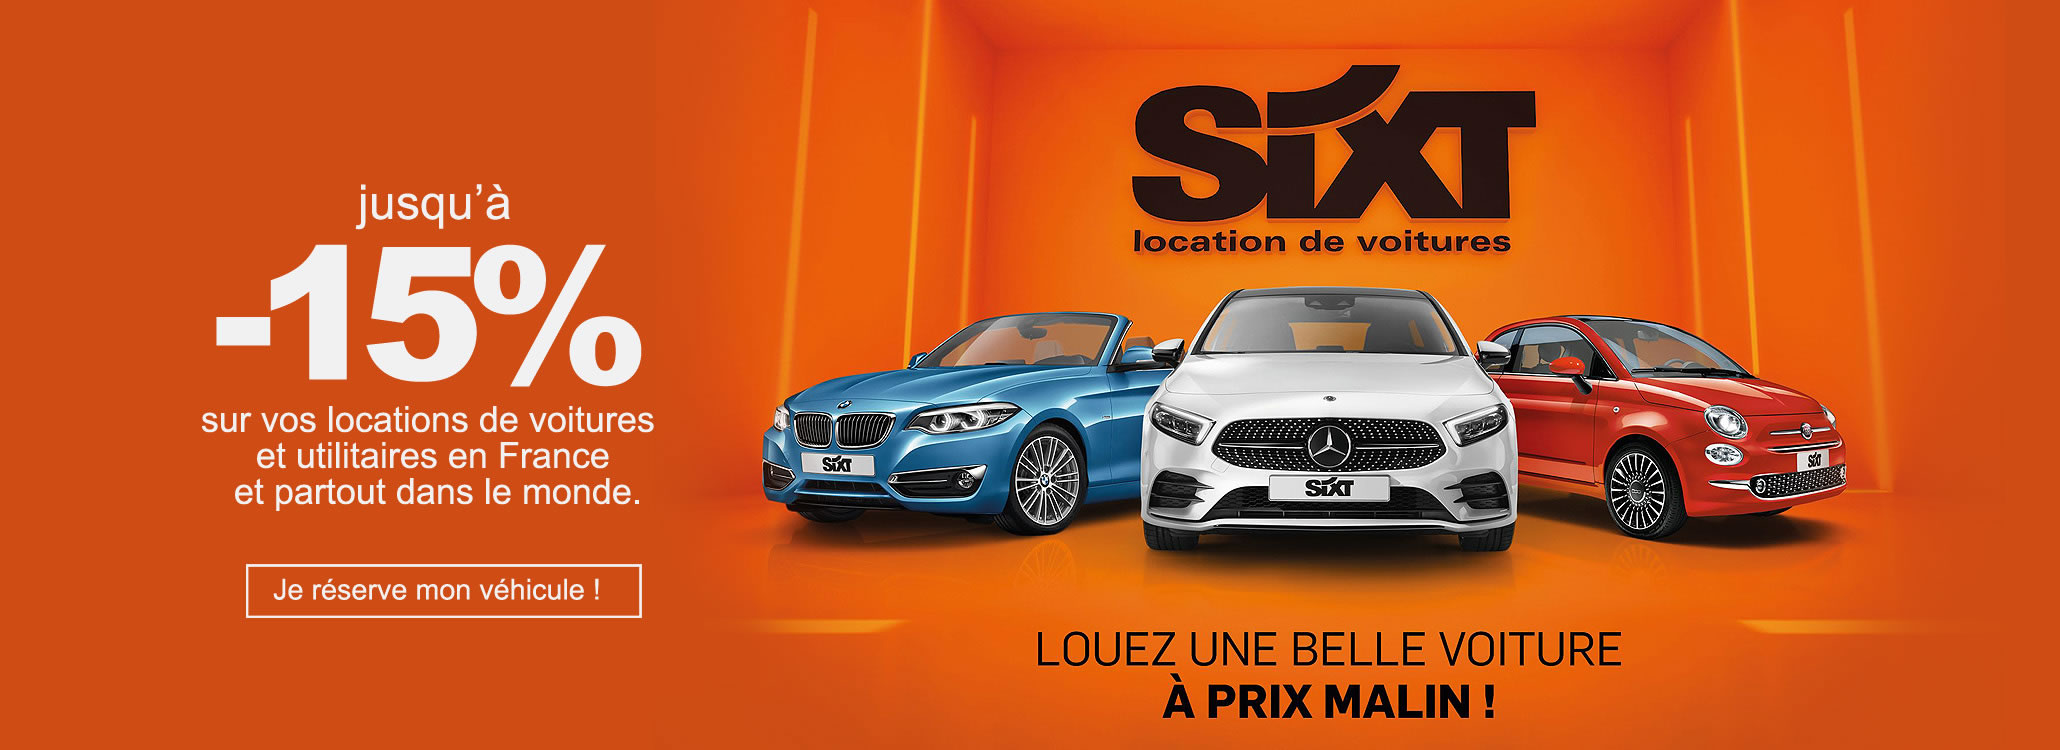 sixt-COSMED-230519_D